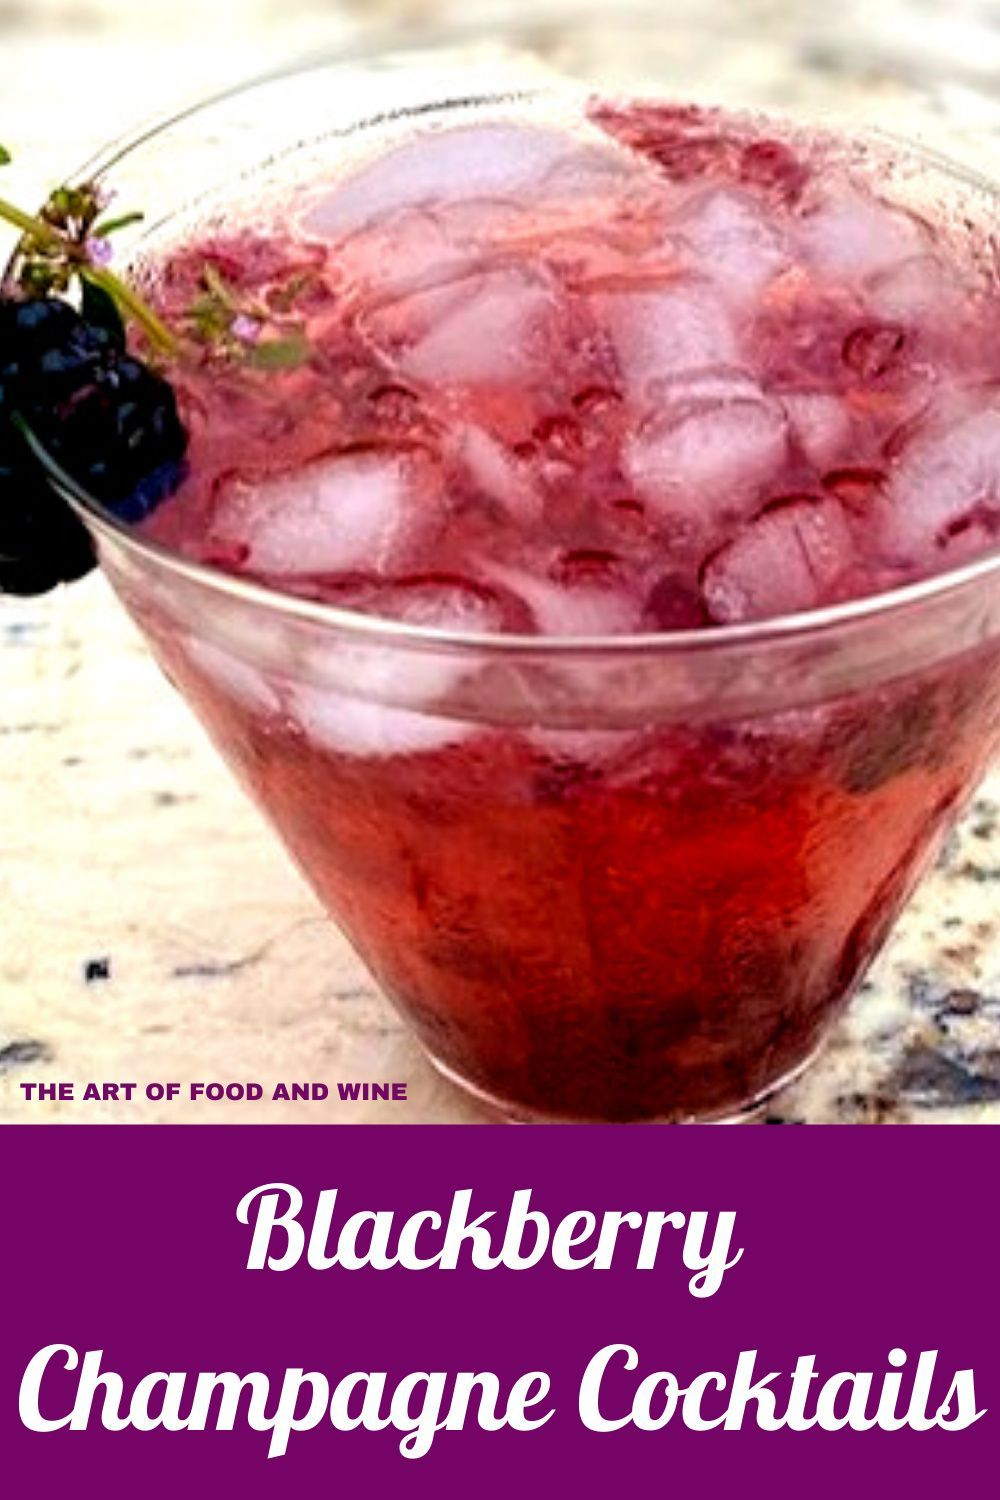 Blackberry Champagne Cocktails The Art Of Food And Wine Recipe In 2020 Wine Recipes Food Cocktails